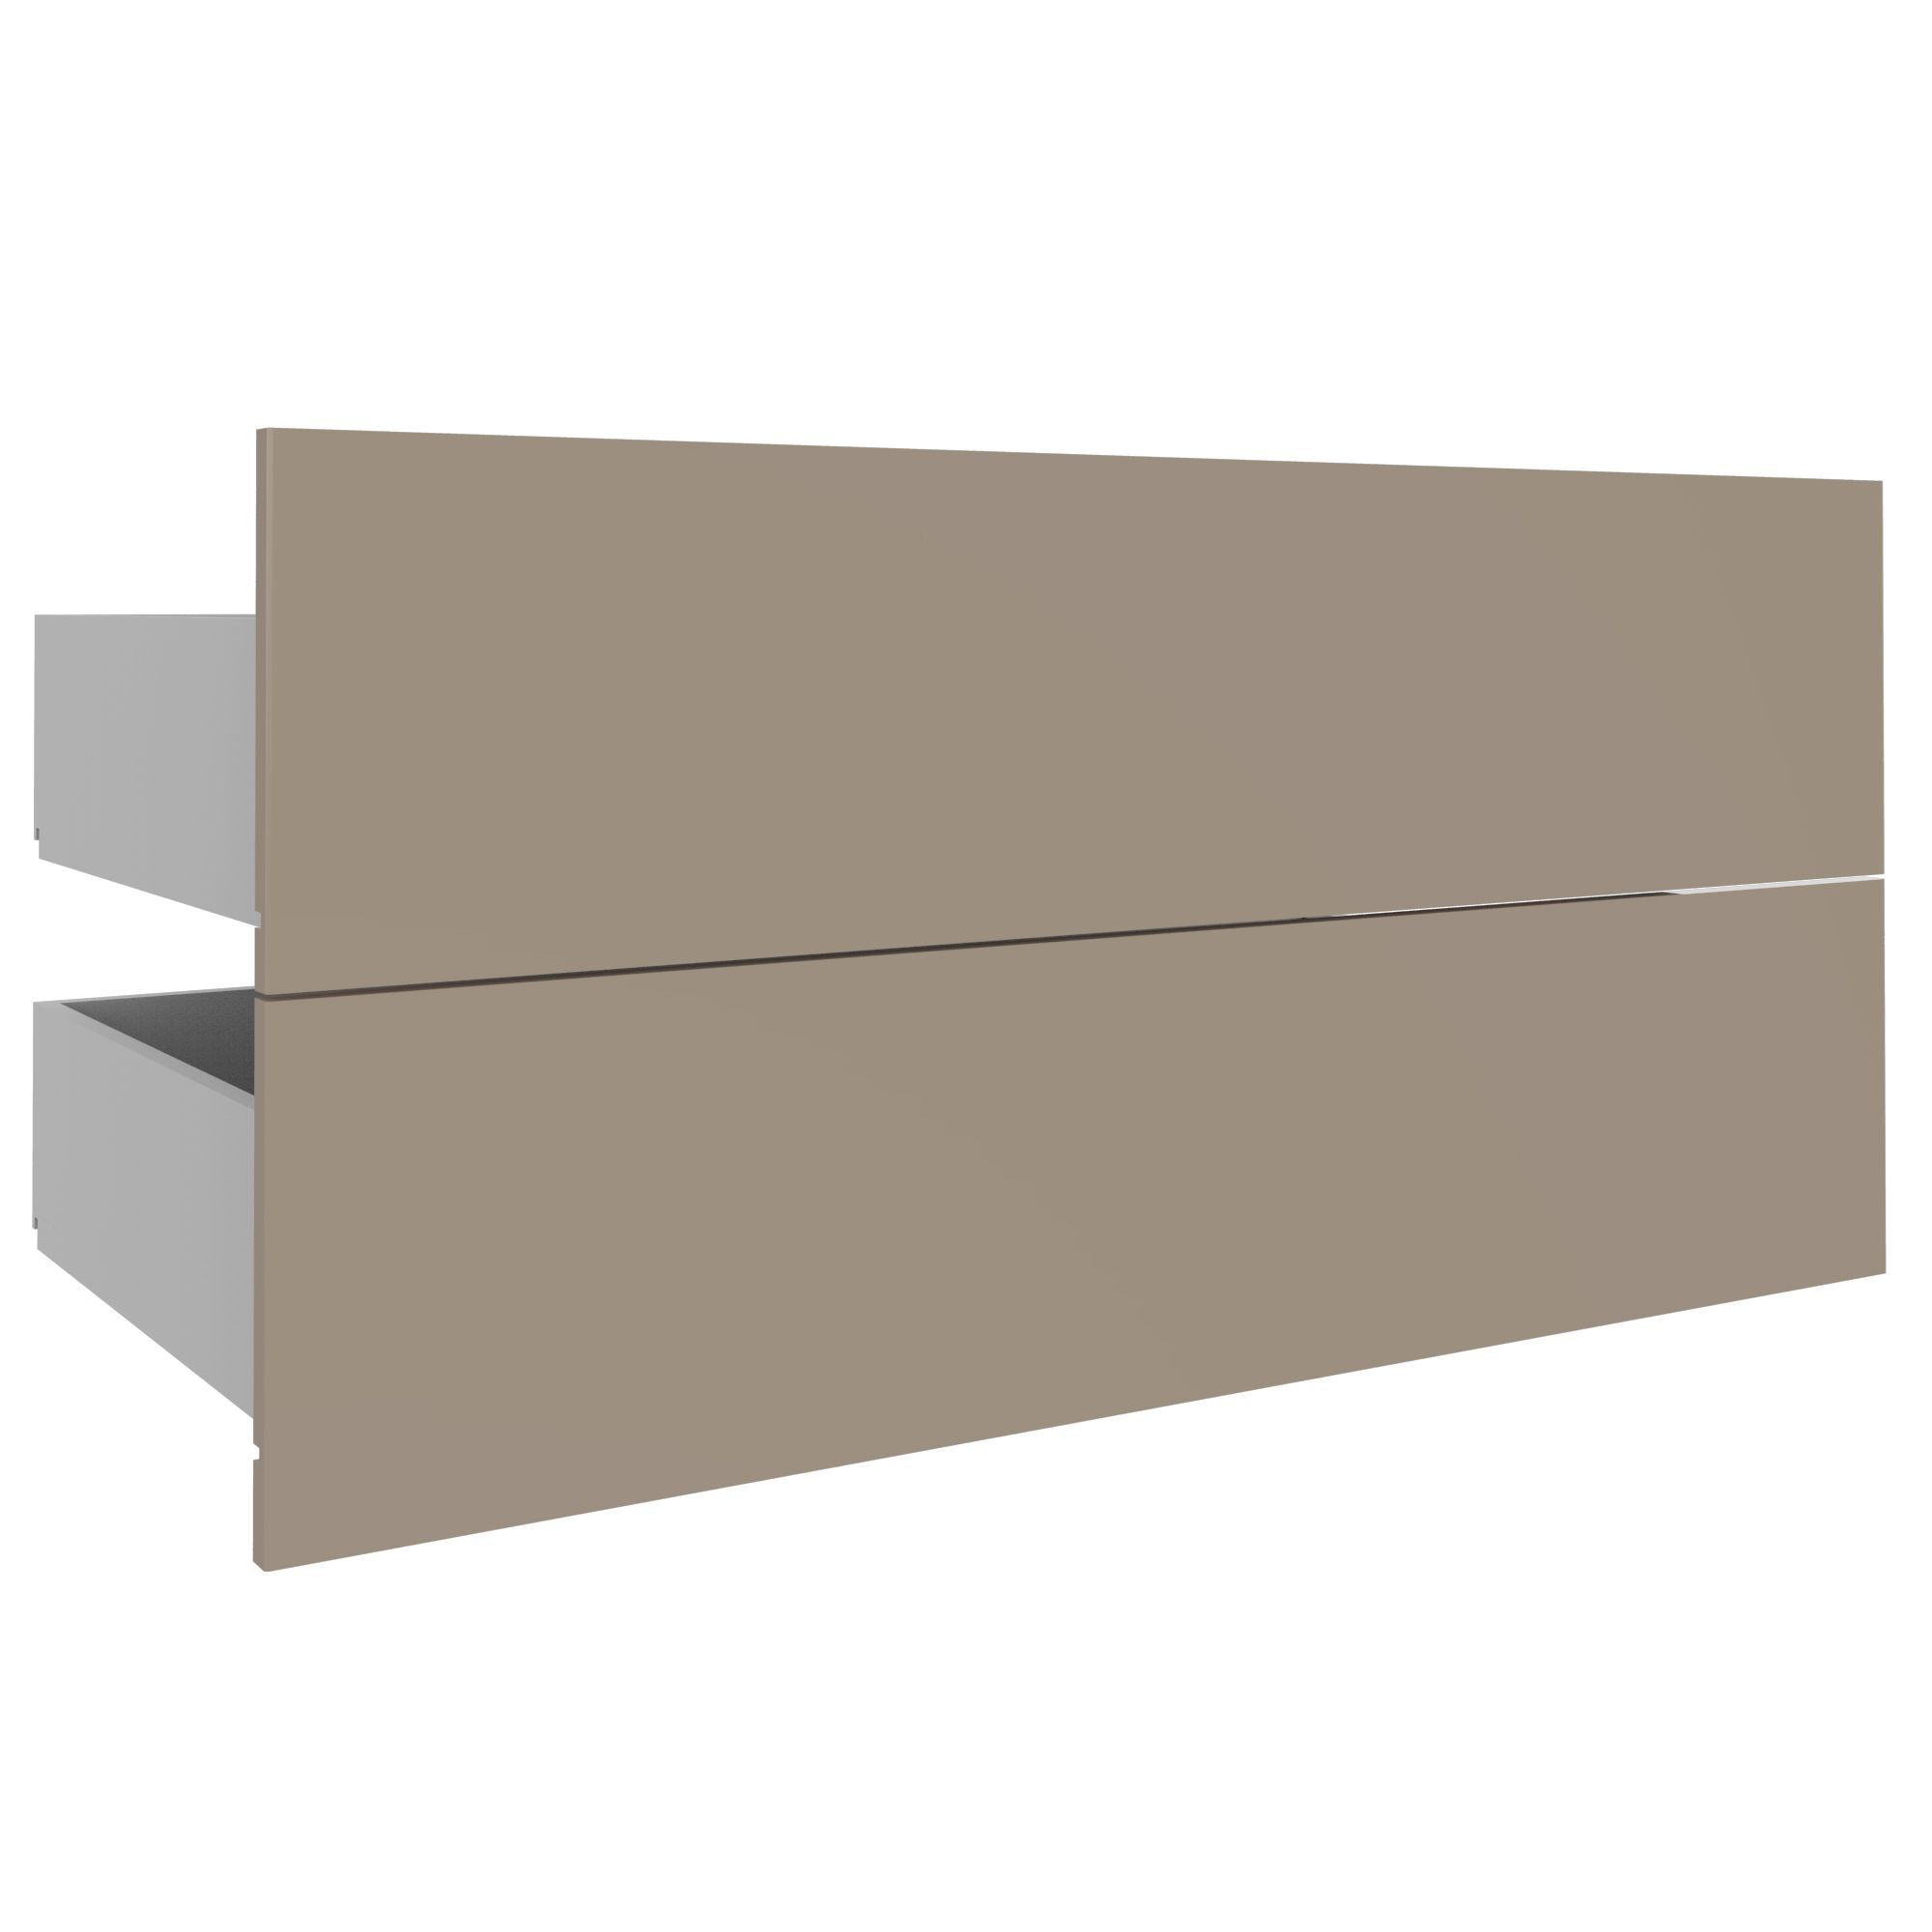 Darwin Modular Cream & Gloss External Drawers (h)237mm (w)1000mm (d)566mm